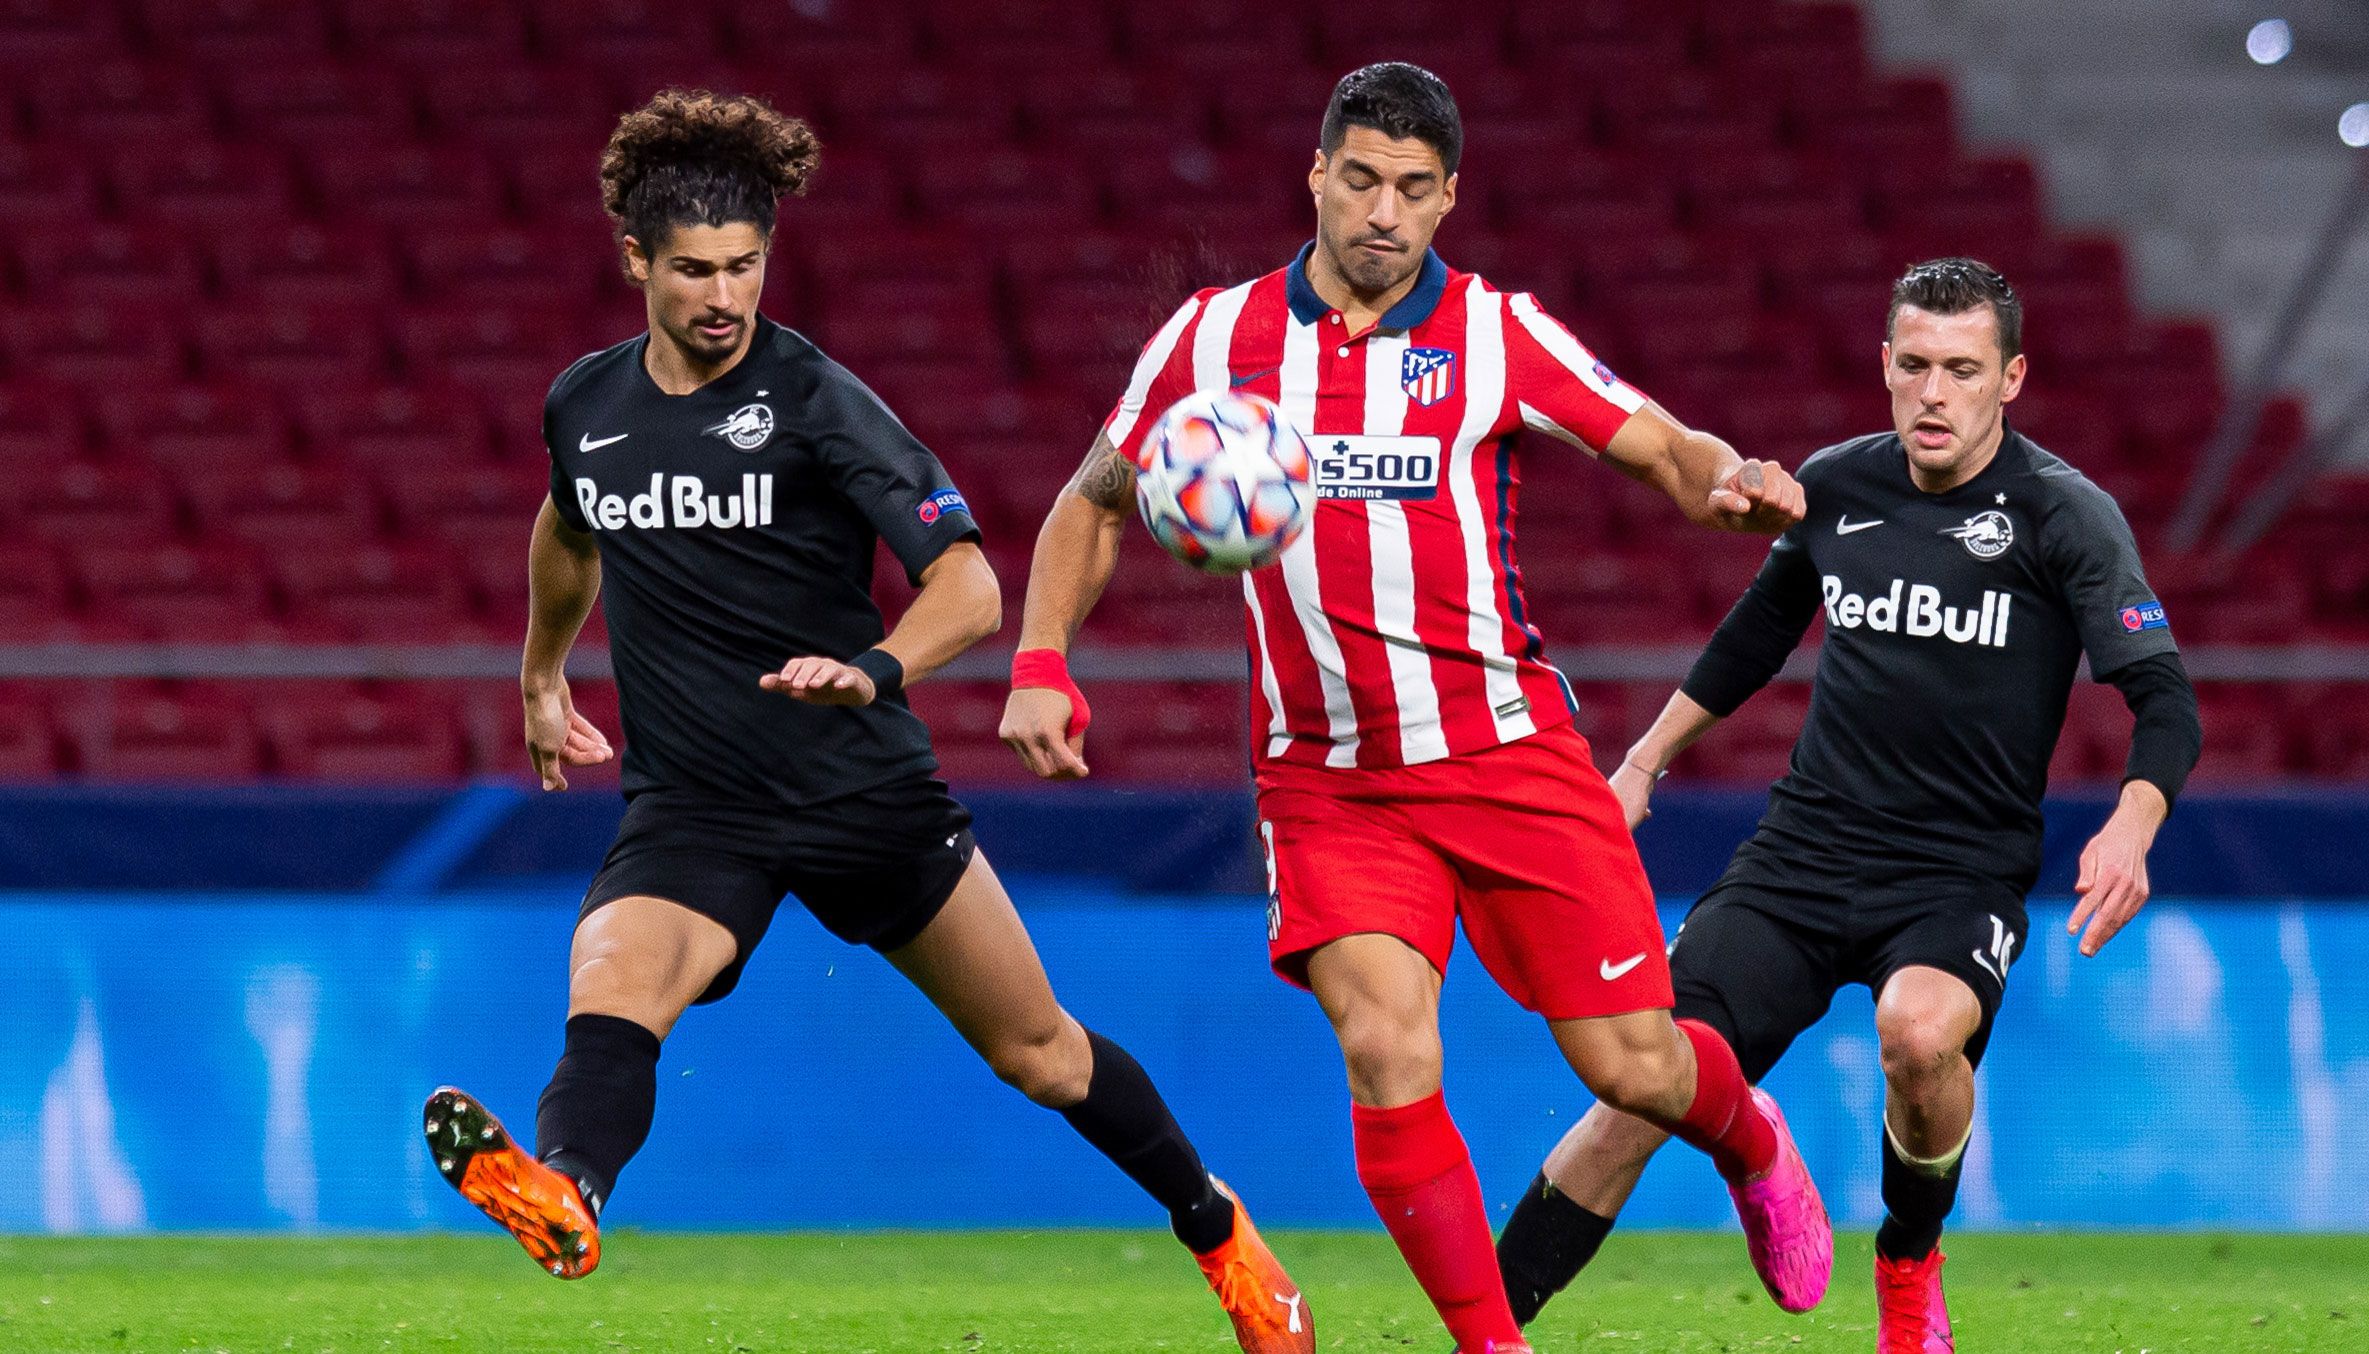 RB Salzburg vs Atletico Madrid: Clean sheet enough for Atletico